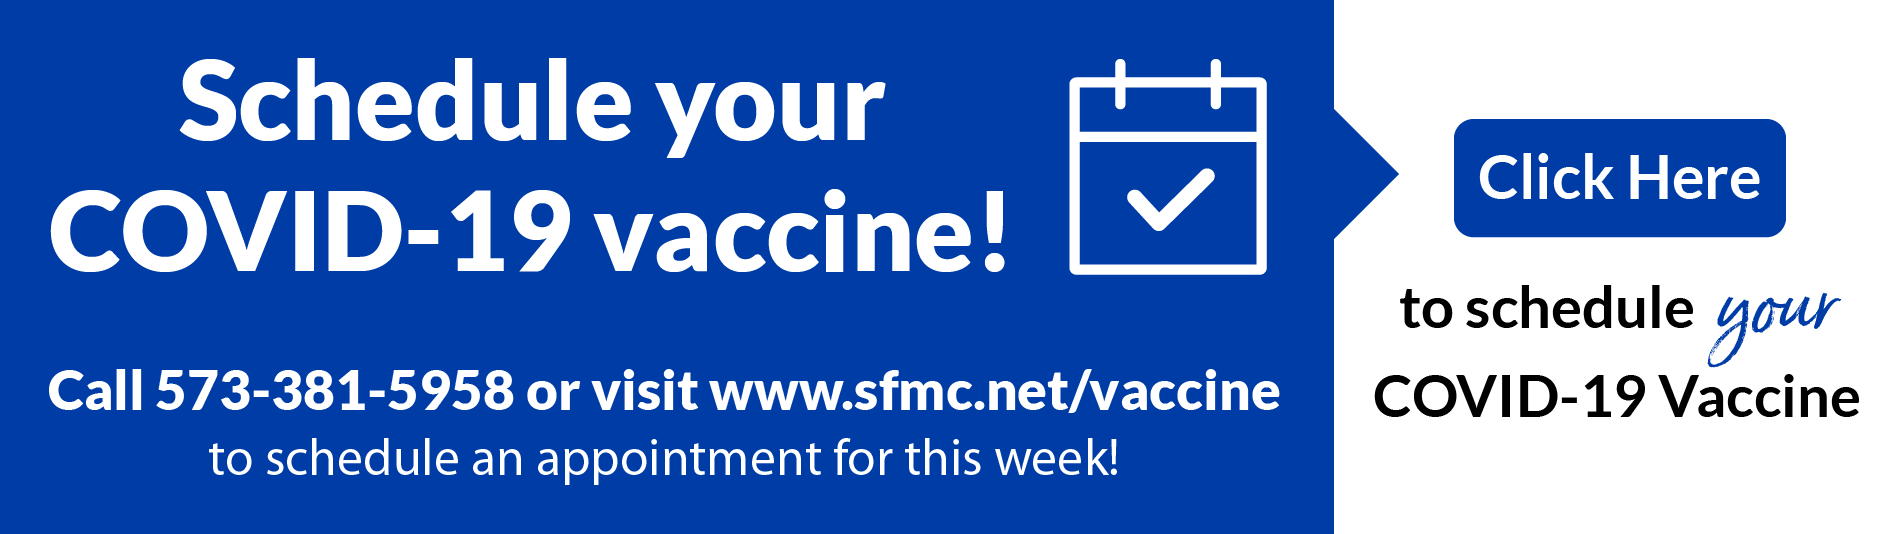 Schedule your COVID-19 vaccine - Click here